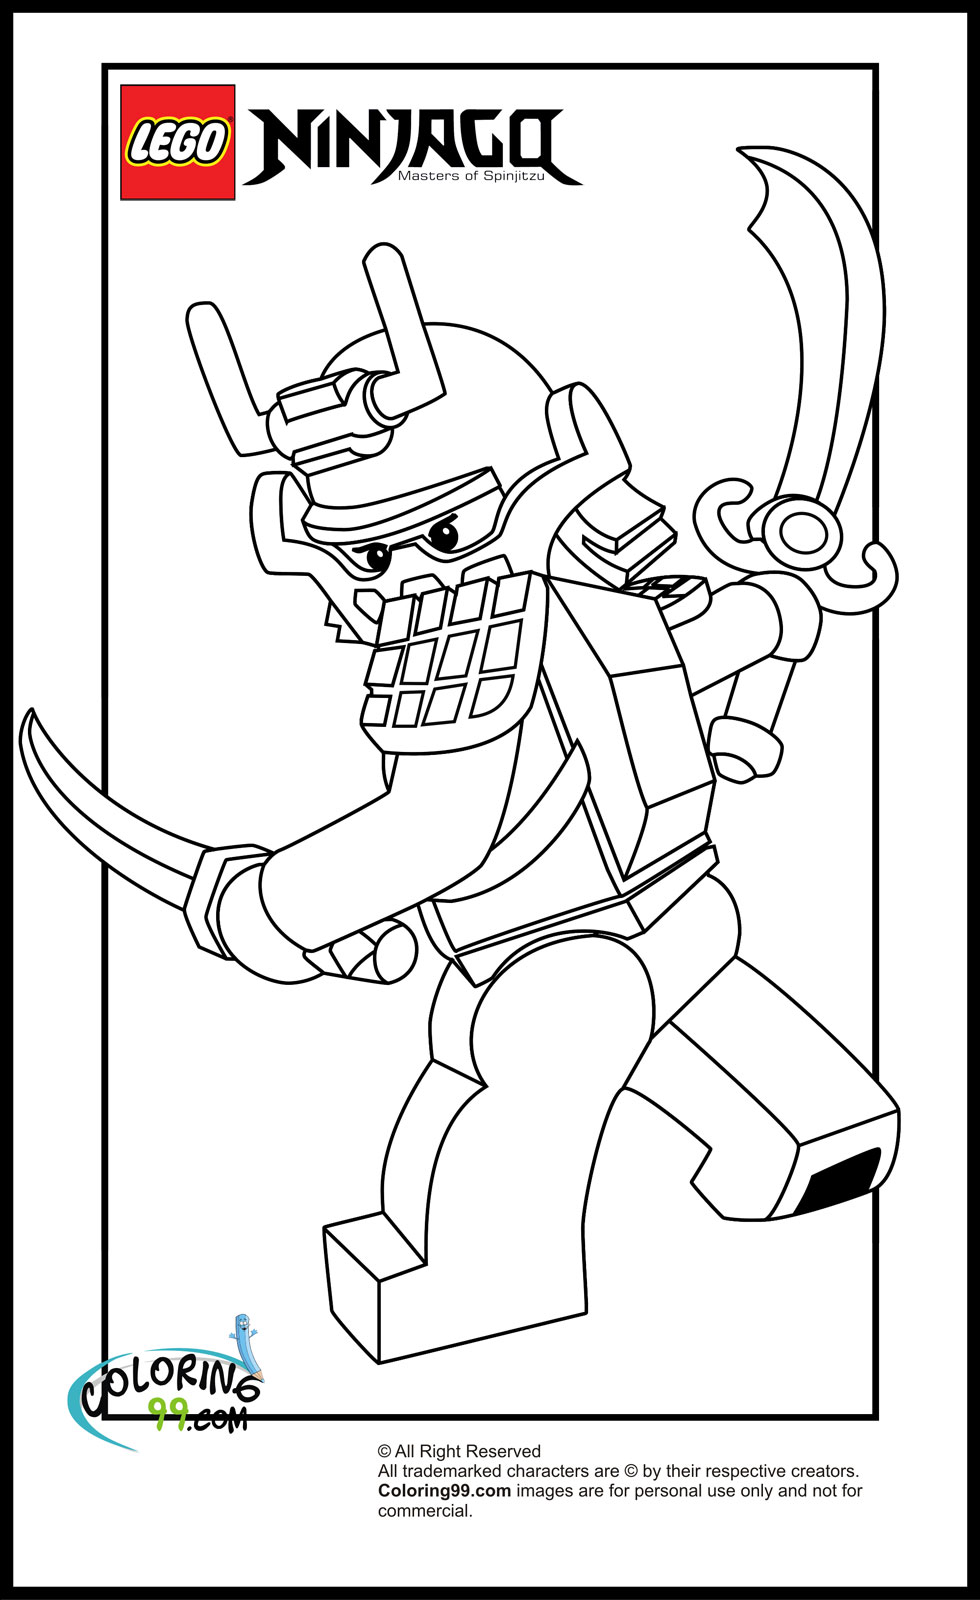 nindroid coloring pages lego elves characters coloring pages coloring pages coloring pages nindroid